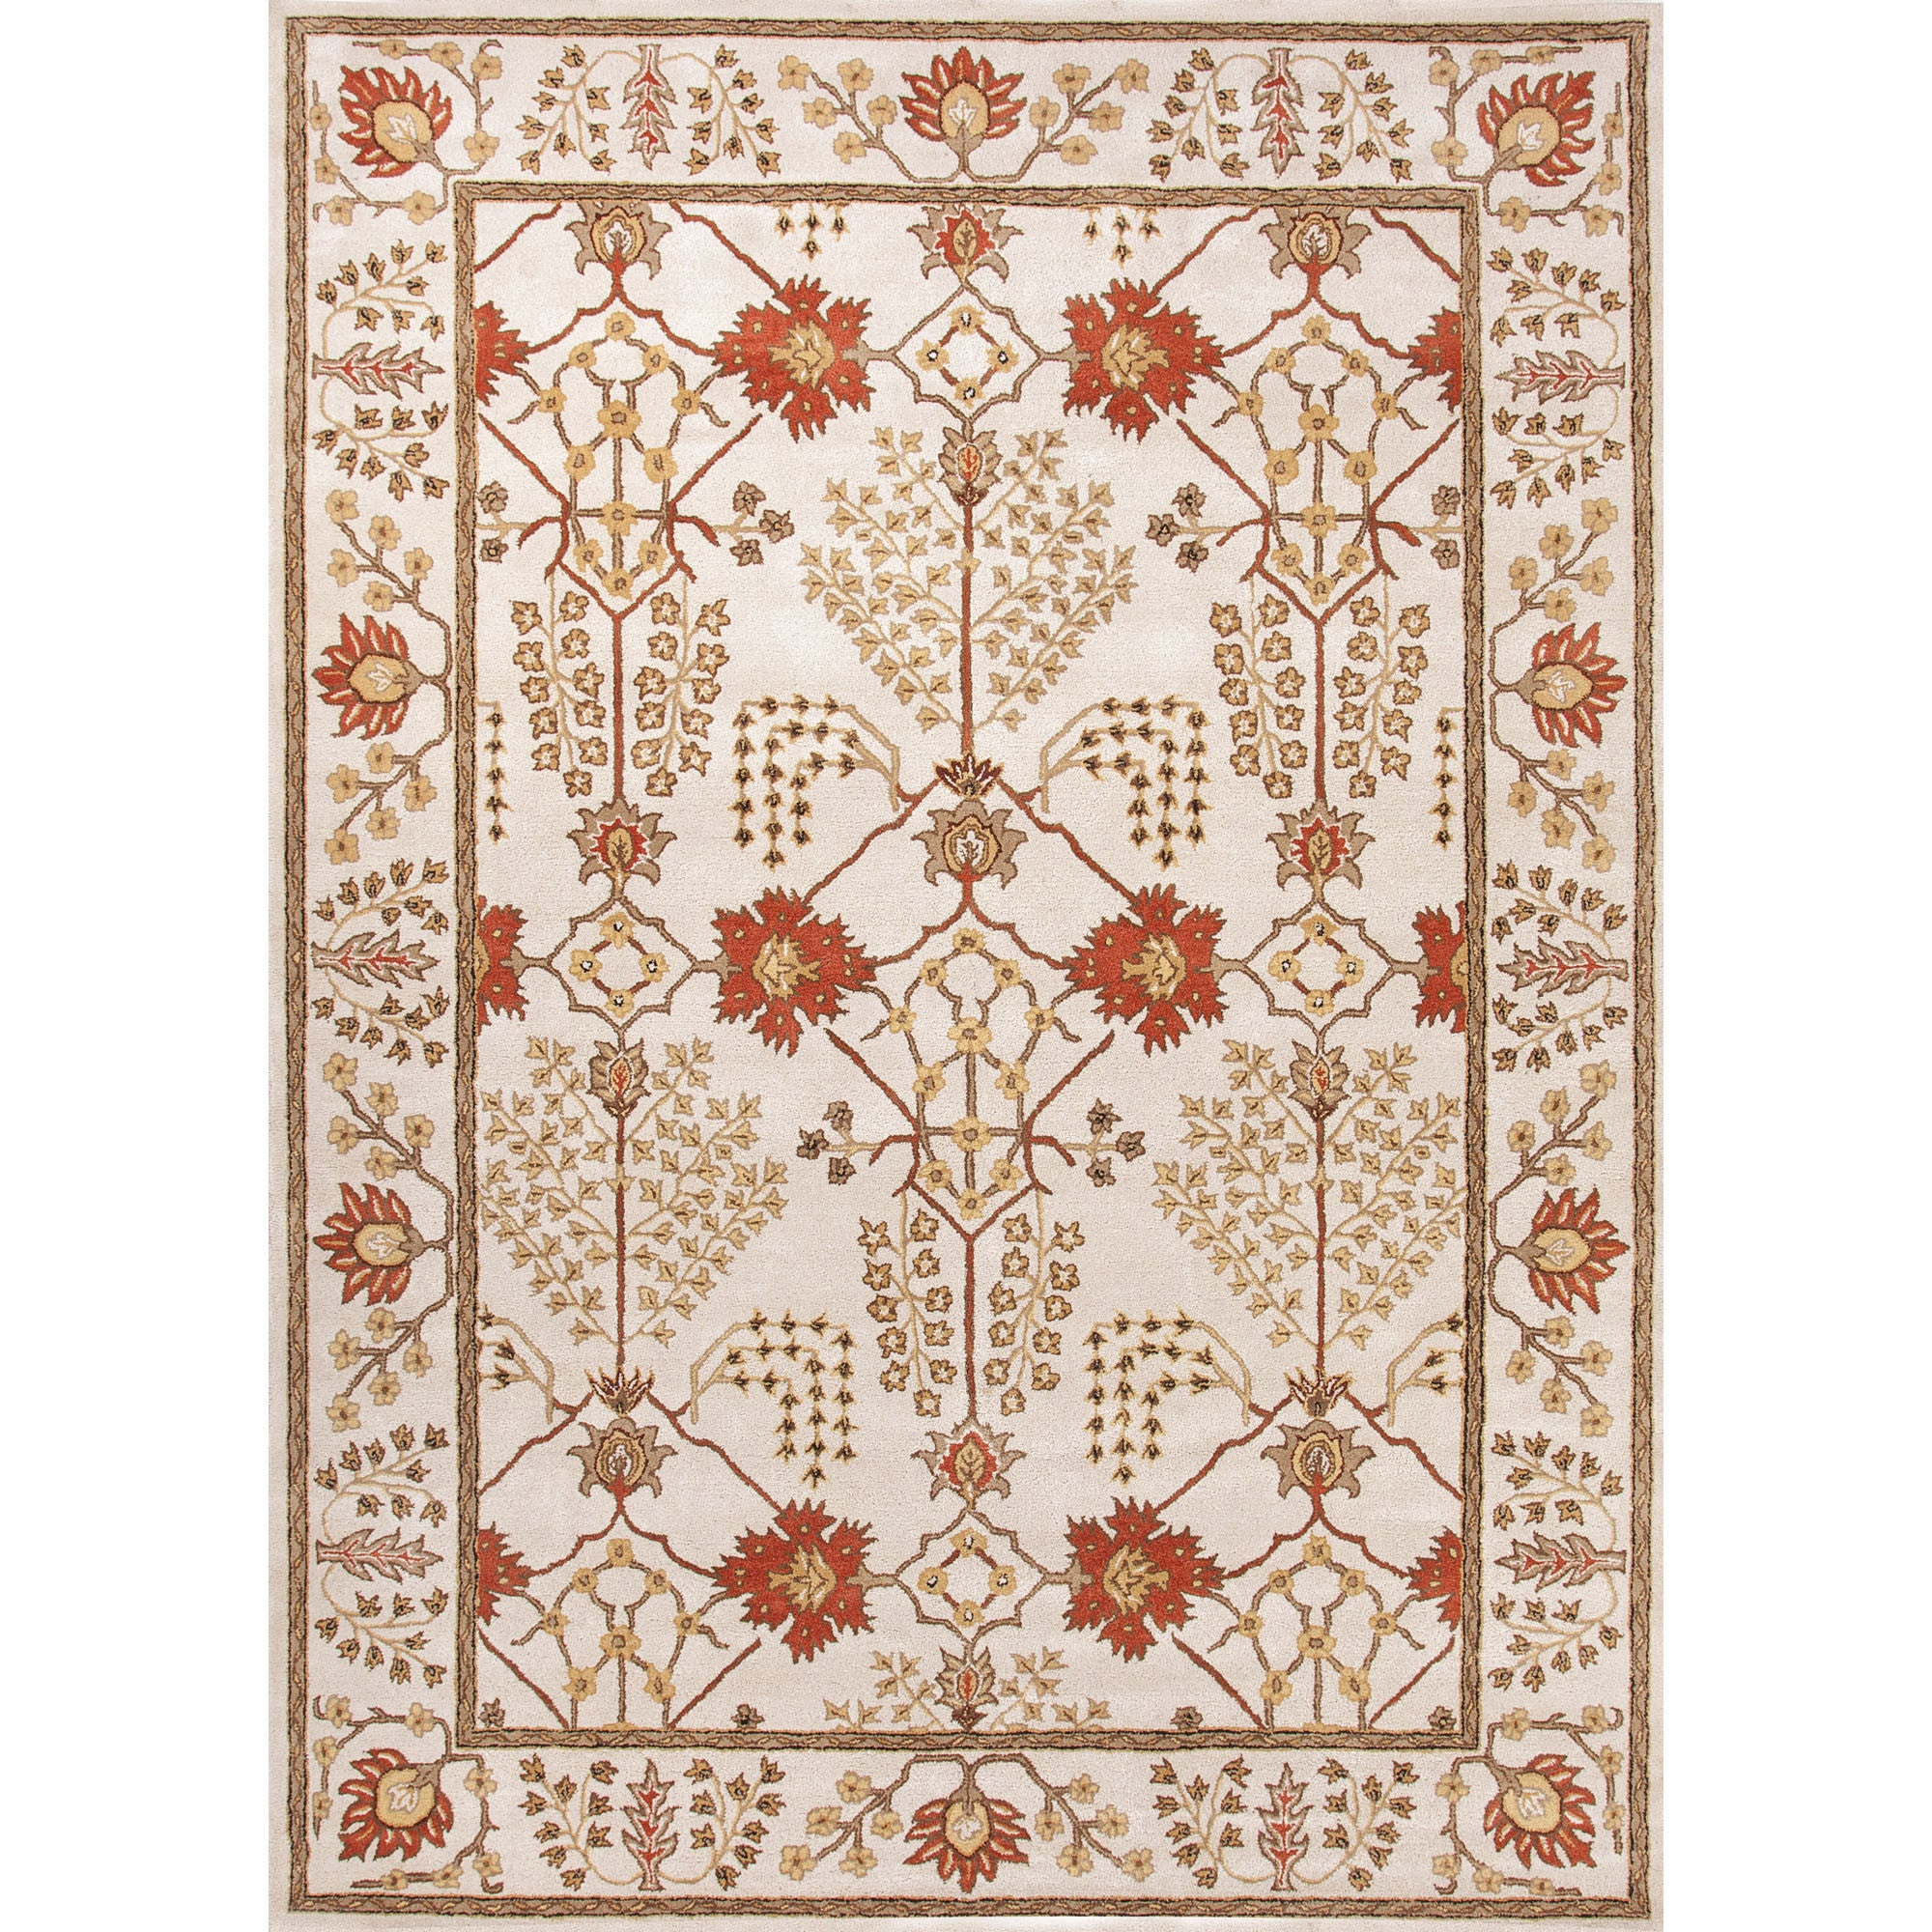 Jaipur Rugs Classic Arts And Crafts Pattern Ivory/Red Wool Area Rug PM72  (Rectangle)